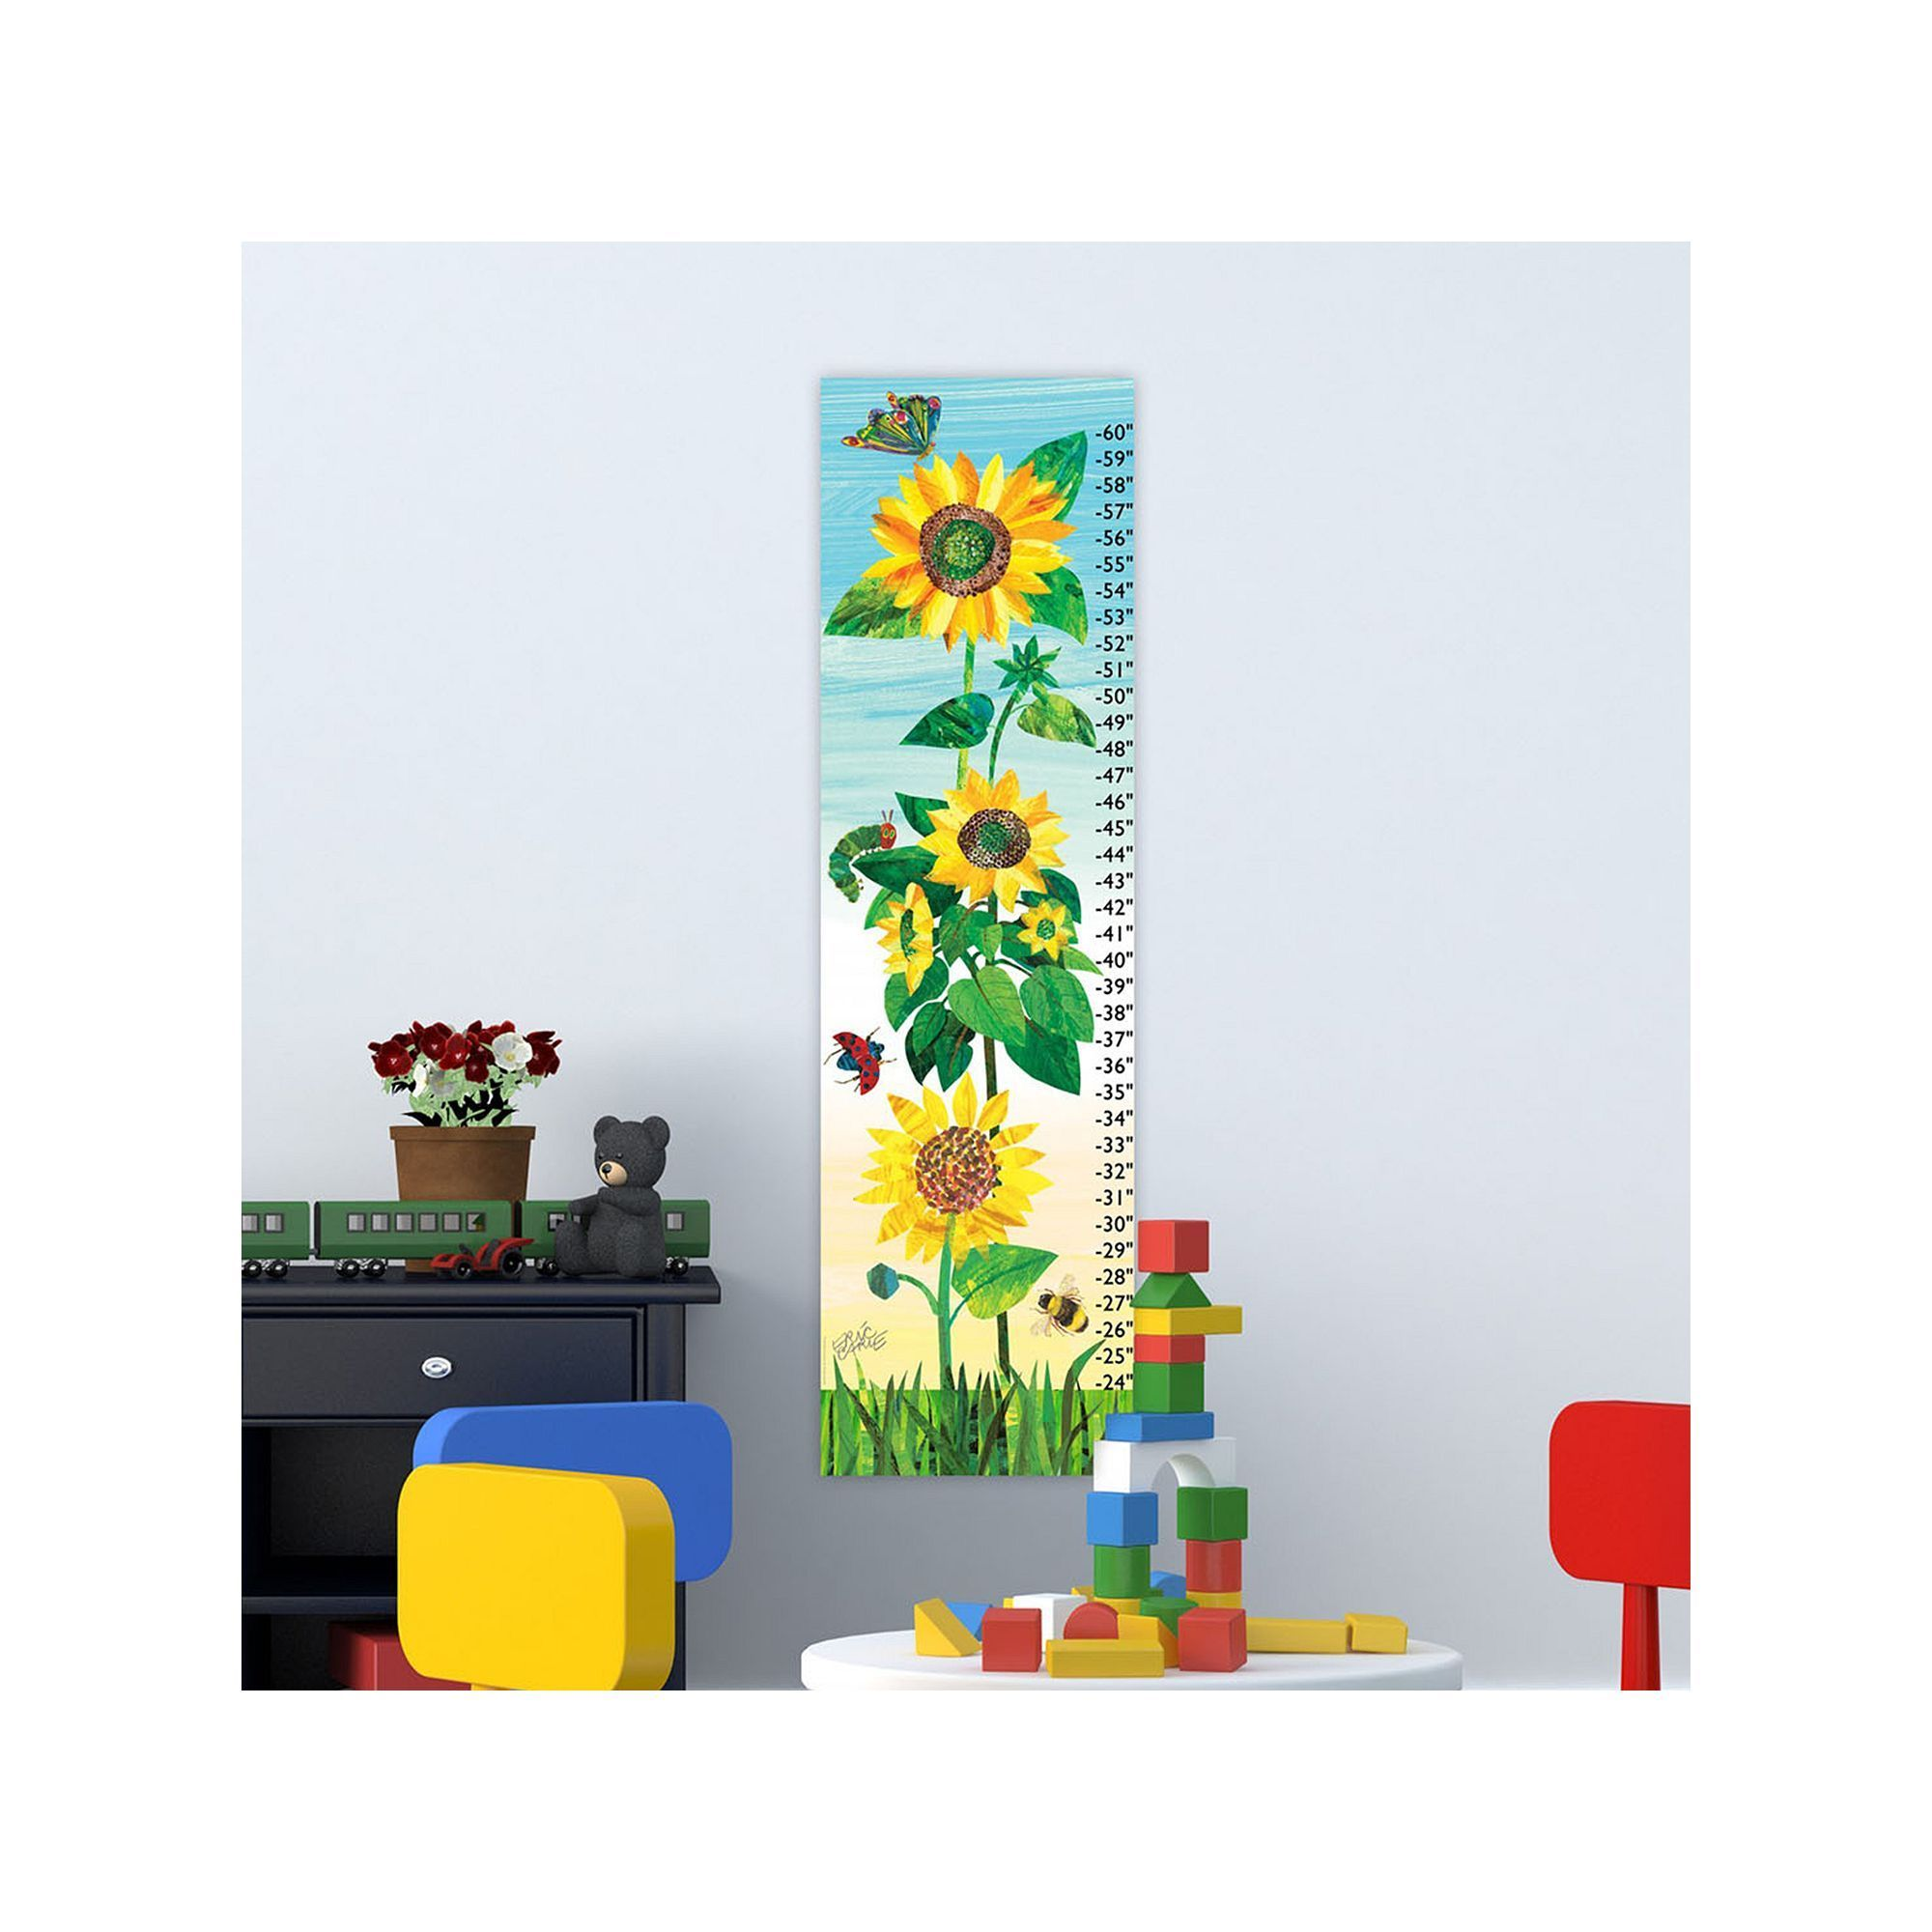 Marmont hill eric carle insects and flowers wall growth chart marmont hill eric carle insects and flowers wall growth chart multicolor nvjuhfo Choice Image